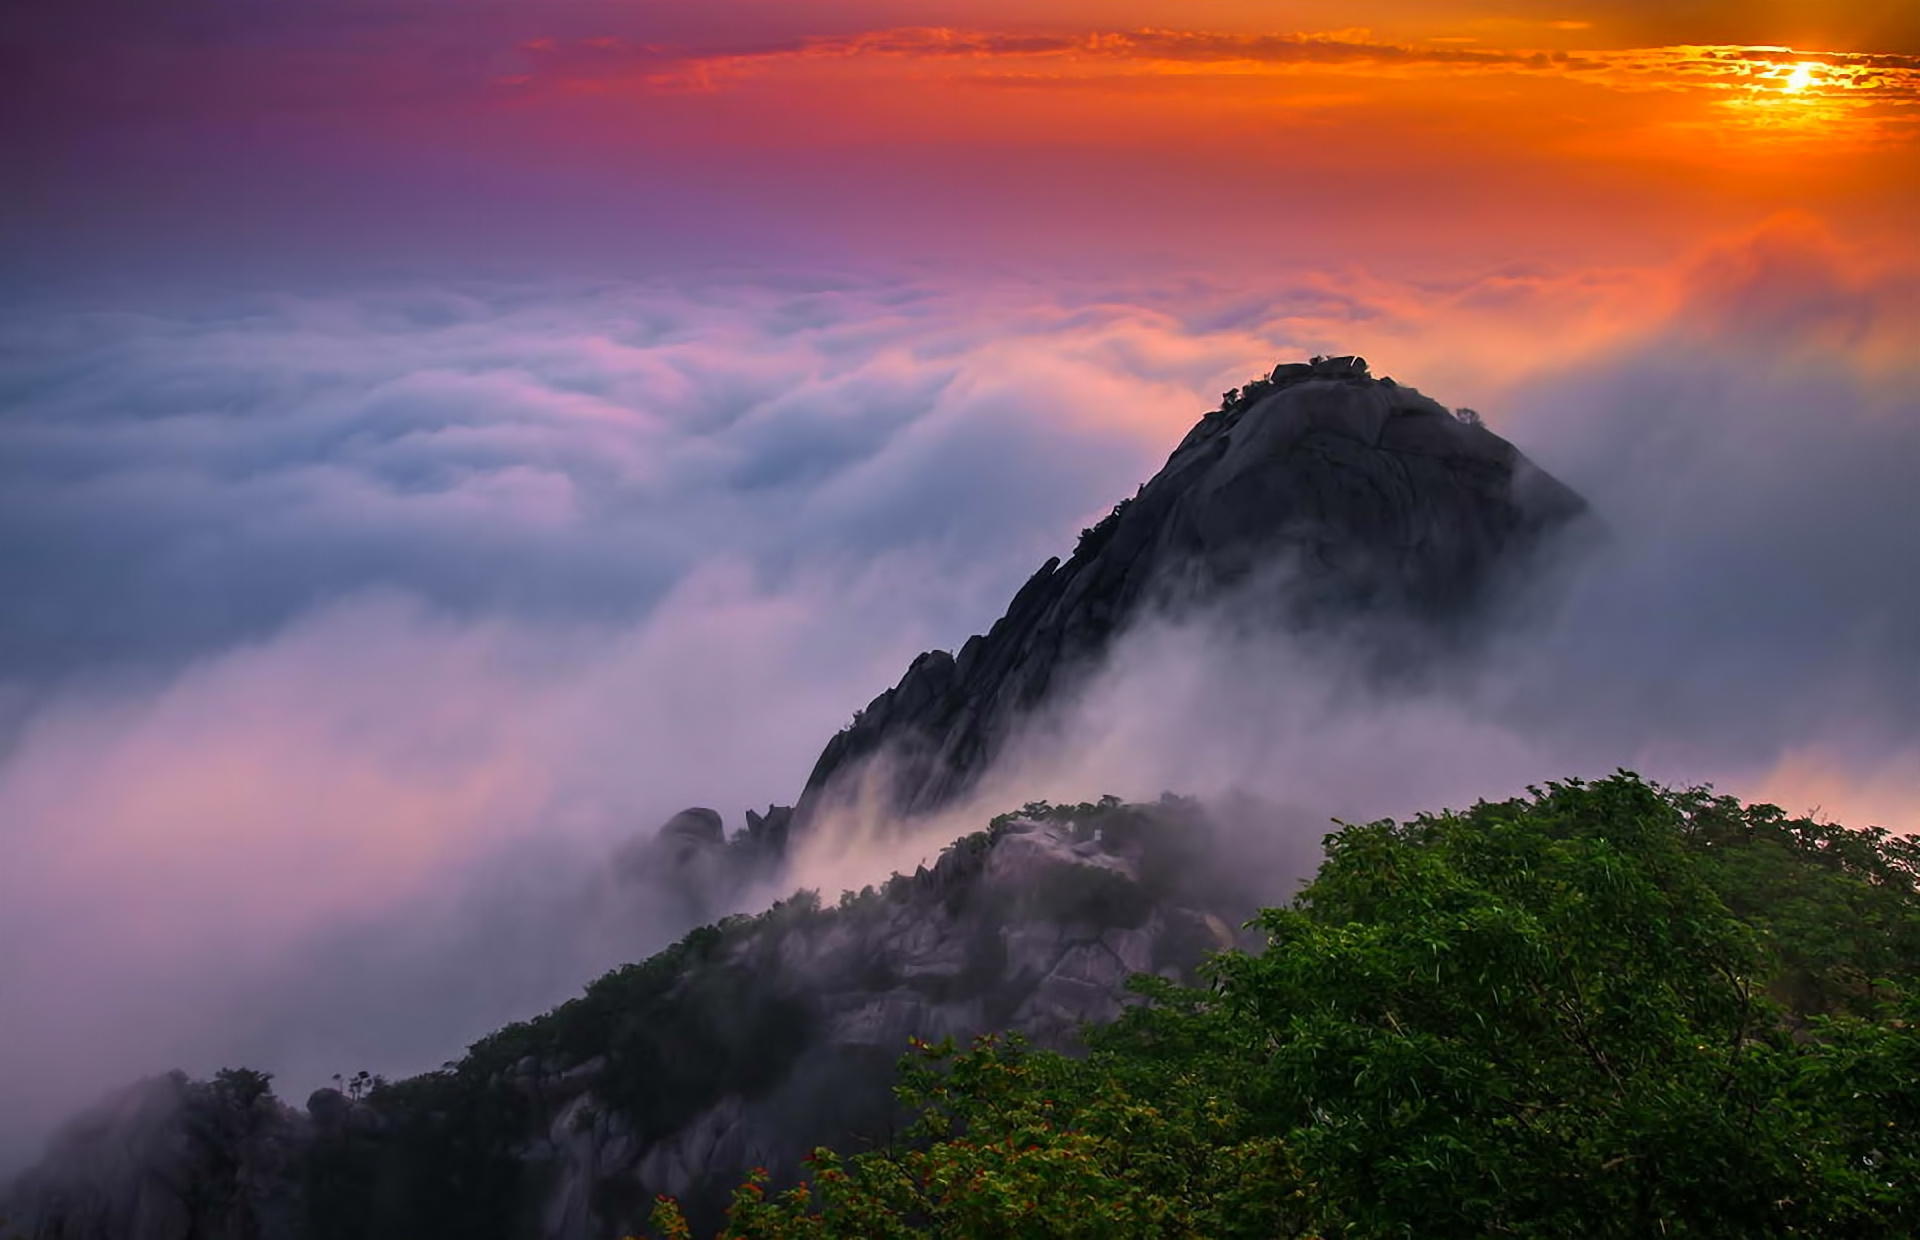 Landscape Mountains Sunrise Wallpaper 1920x1240